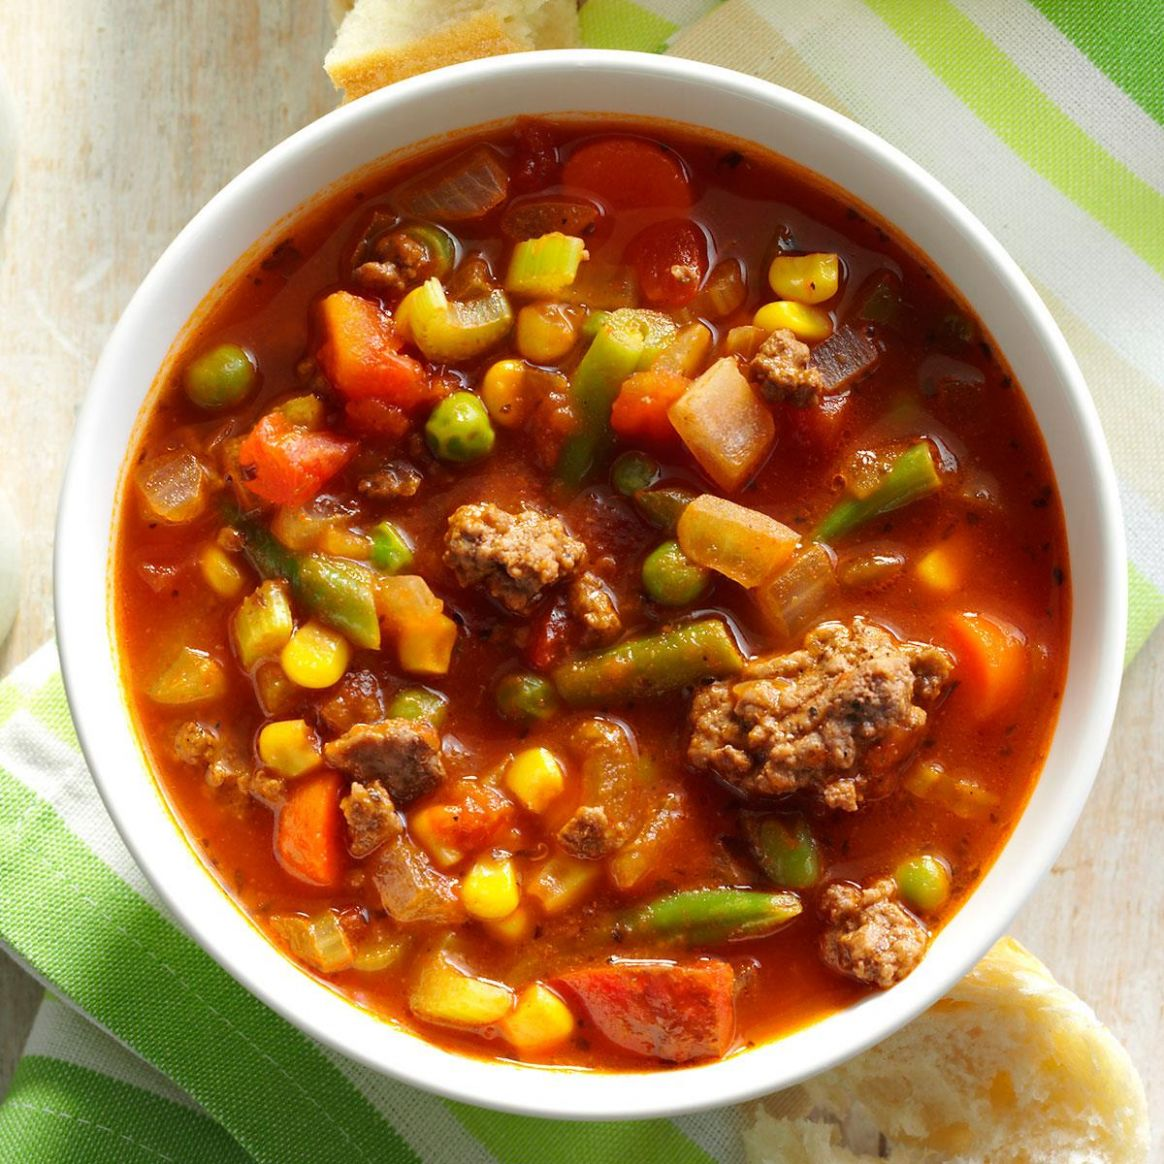 Spicy Beef Vegetable Stew - Recipes Veg Beef Soup